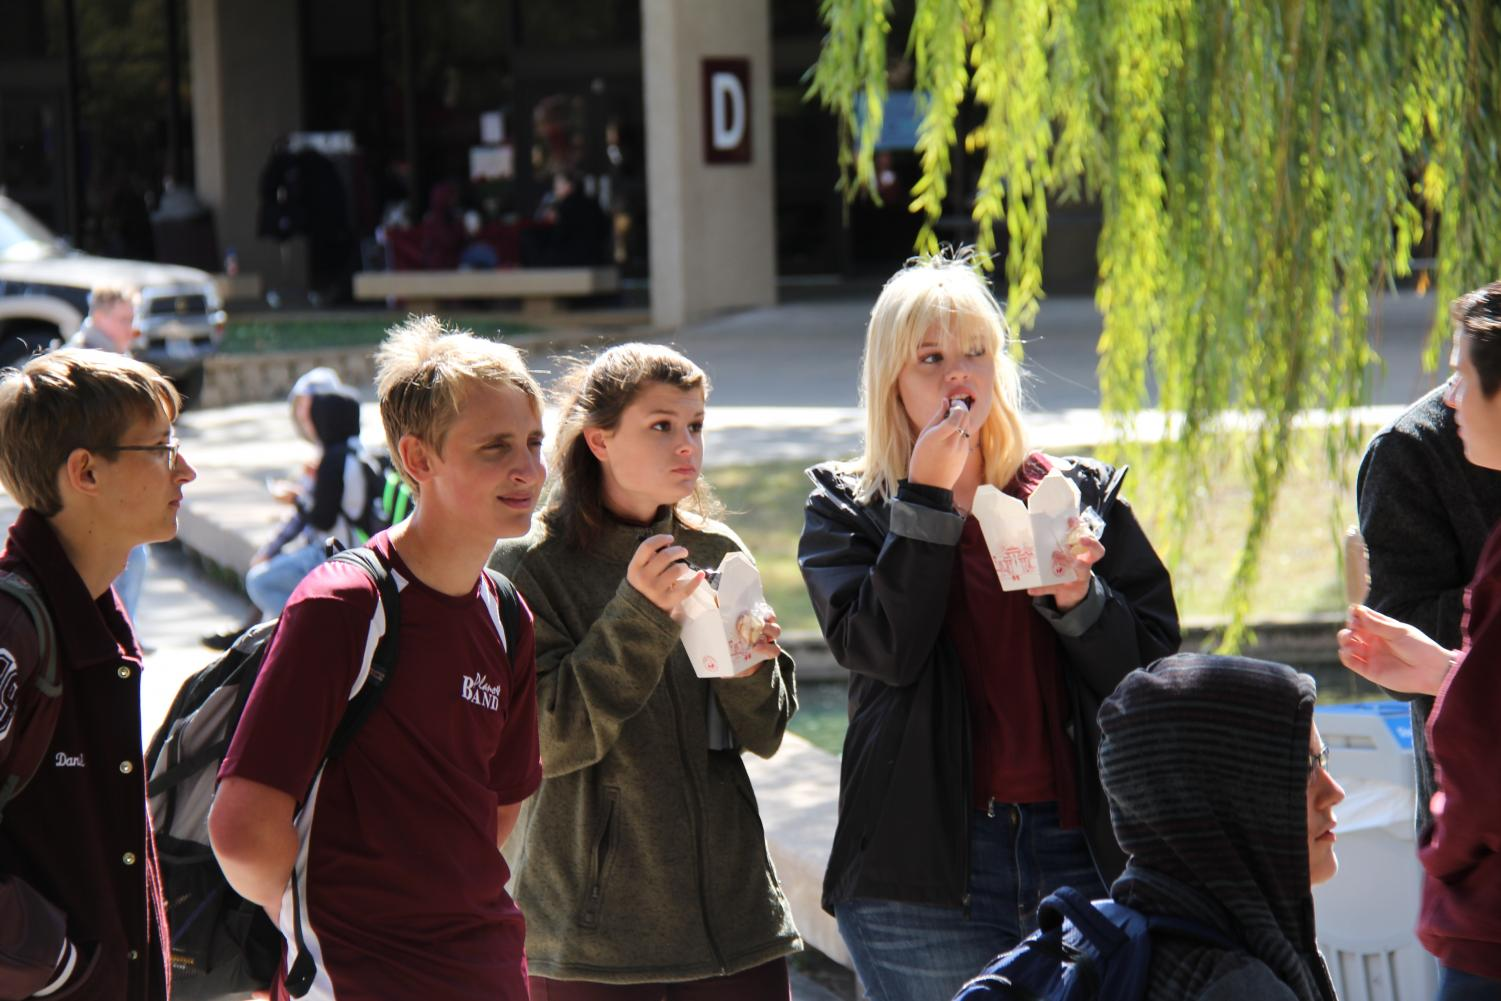 Juniors Bryan St. John, Kasi Schiffer and Mary Campbell enjoy watching one of the performances while eating Chinese food during the spring Stay Day last year. (photo by Ashley Brockette)